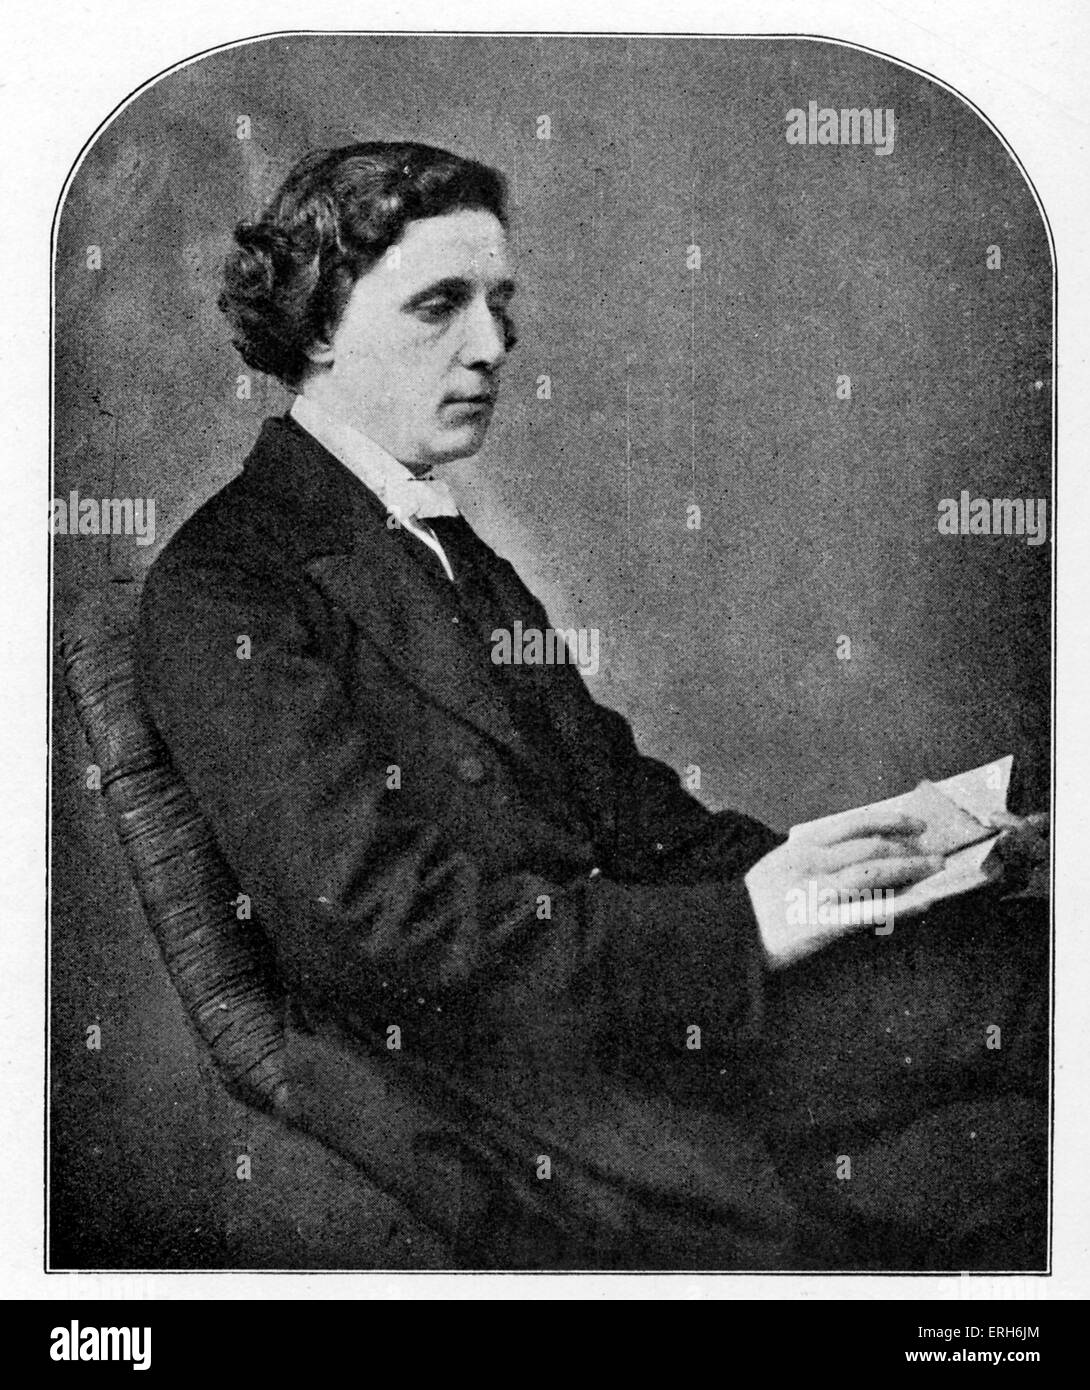 Lewis Carroll - portrait. (Real name Reverend Charles Lutwidge Dodgson) English author: 27 January 1832 - 14 January - Stock Image